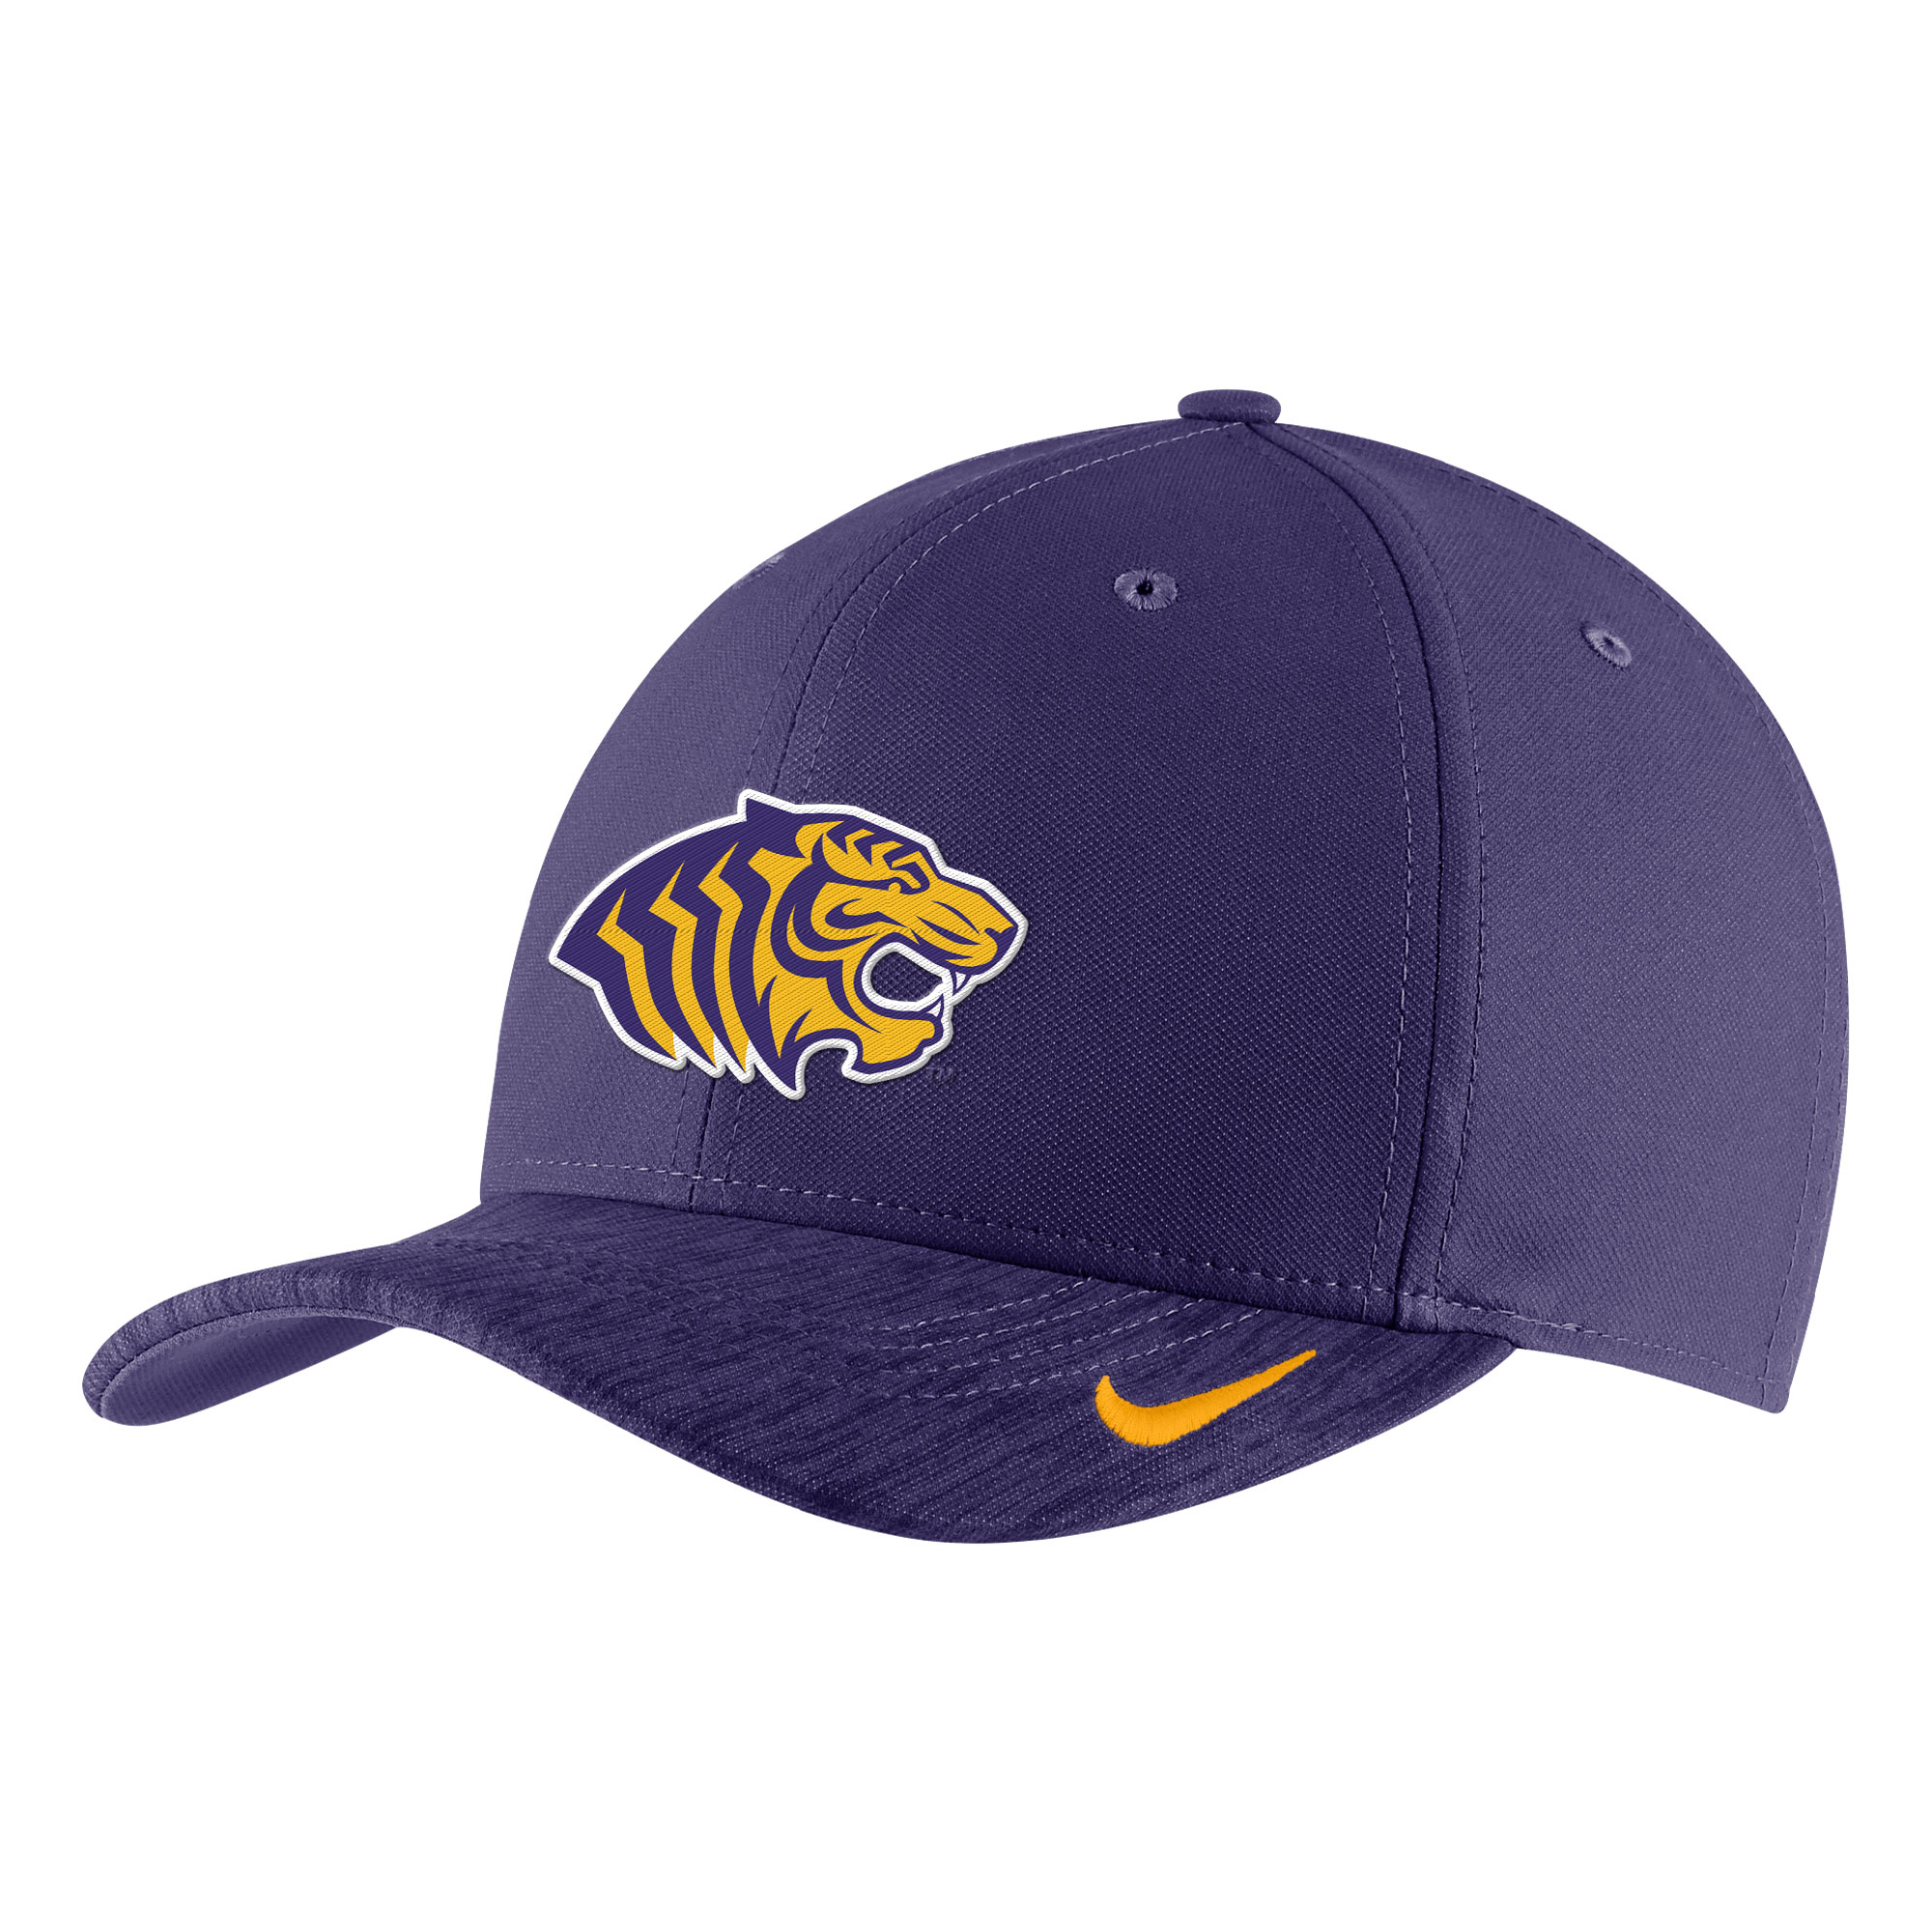 OUACHITA CLASSIC YOUTH HAT